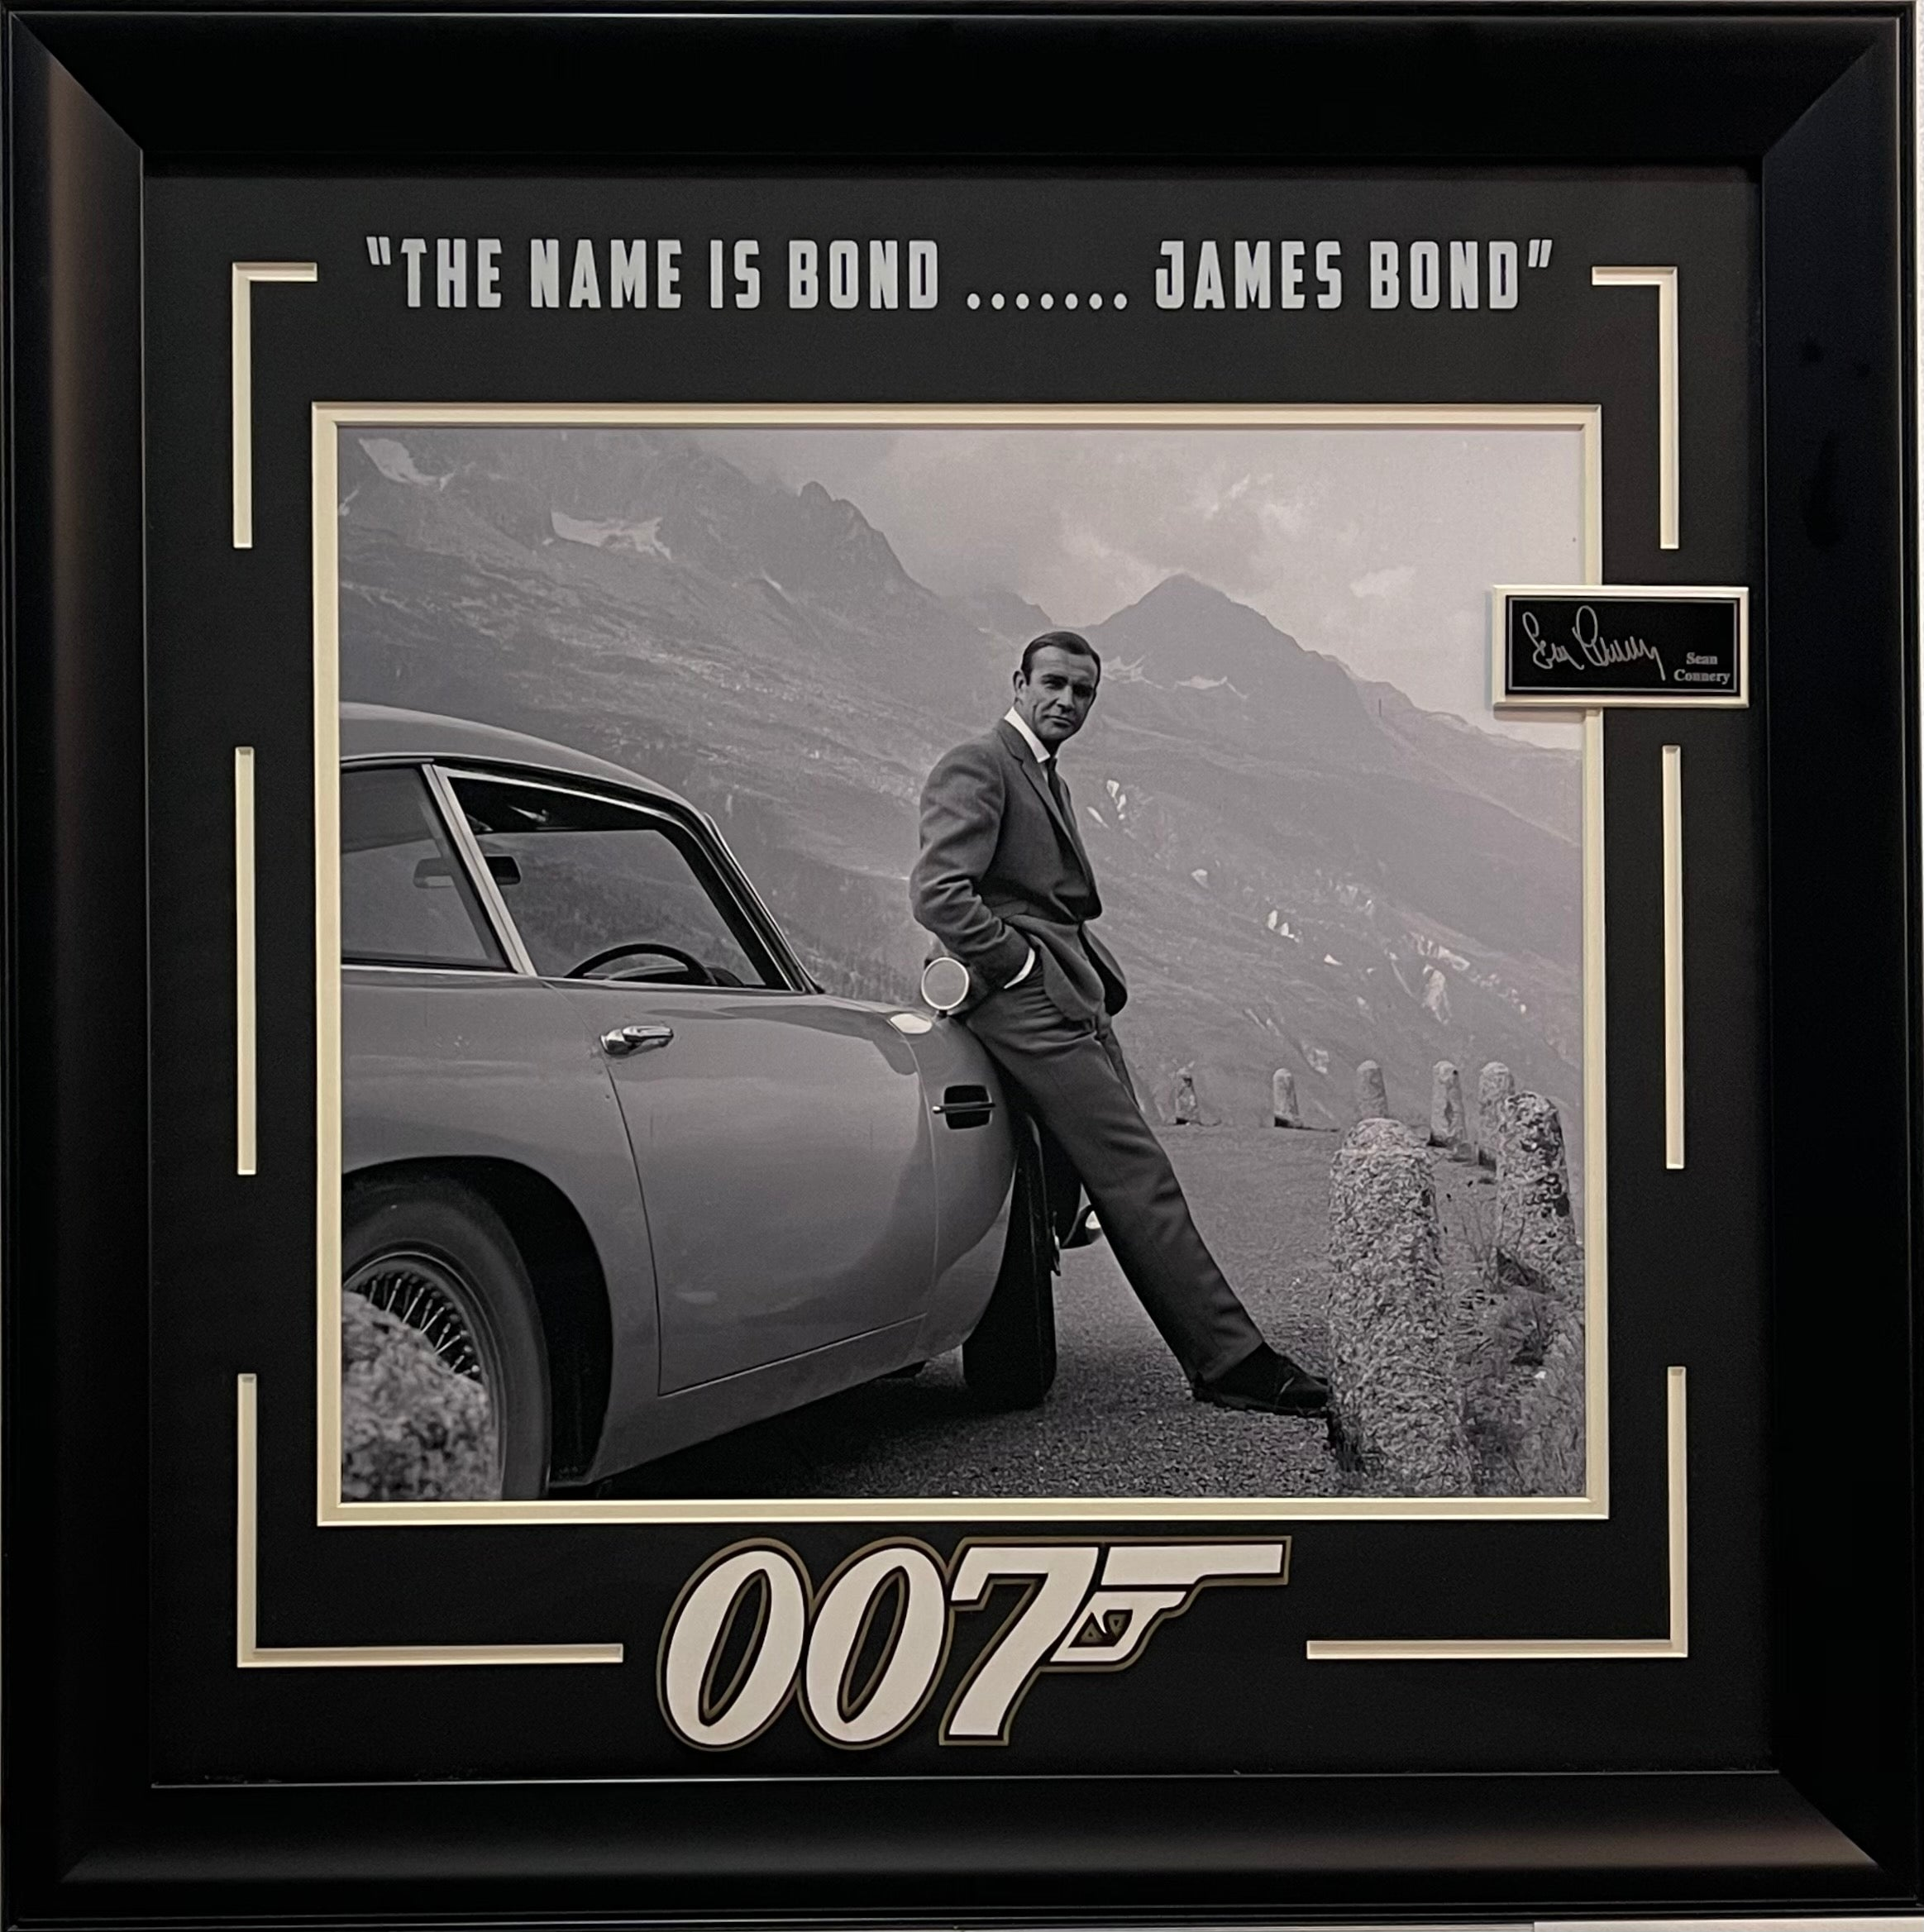 James Bond Framed Photo with Laser Engraved Signature Sean Connery and Quote